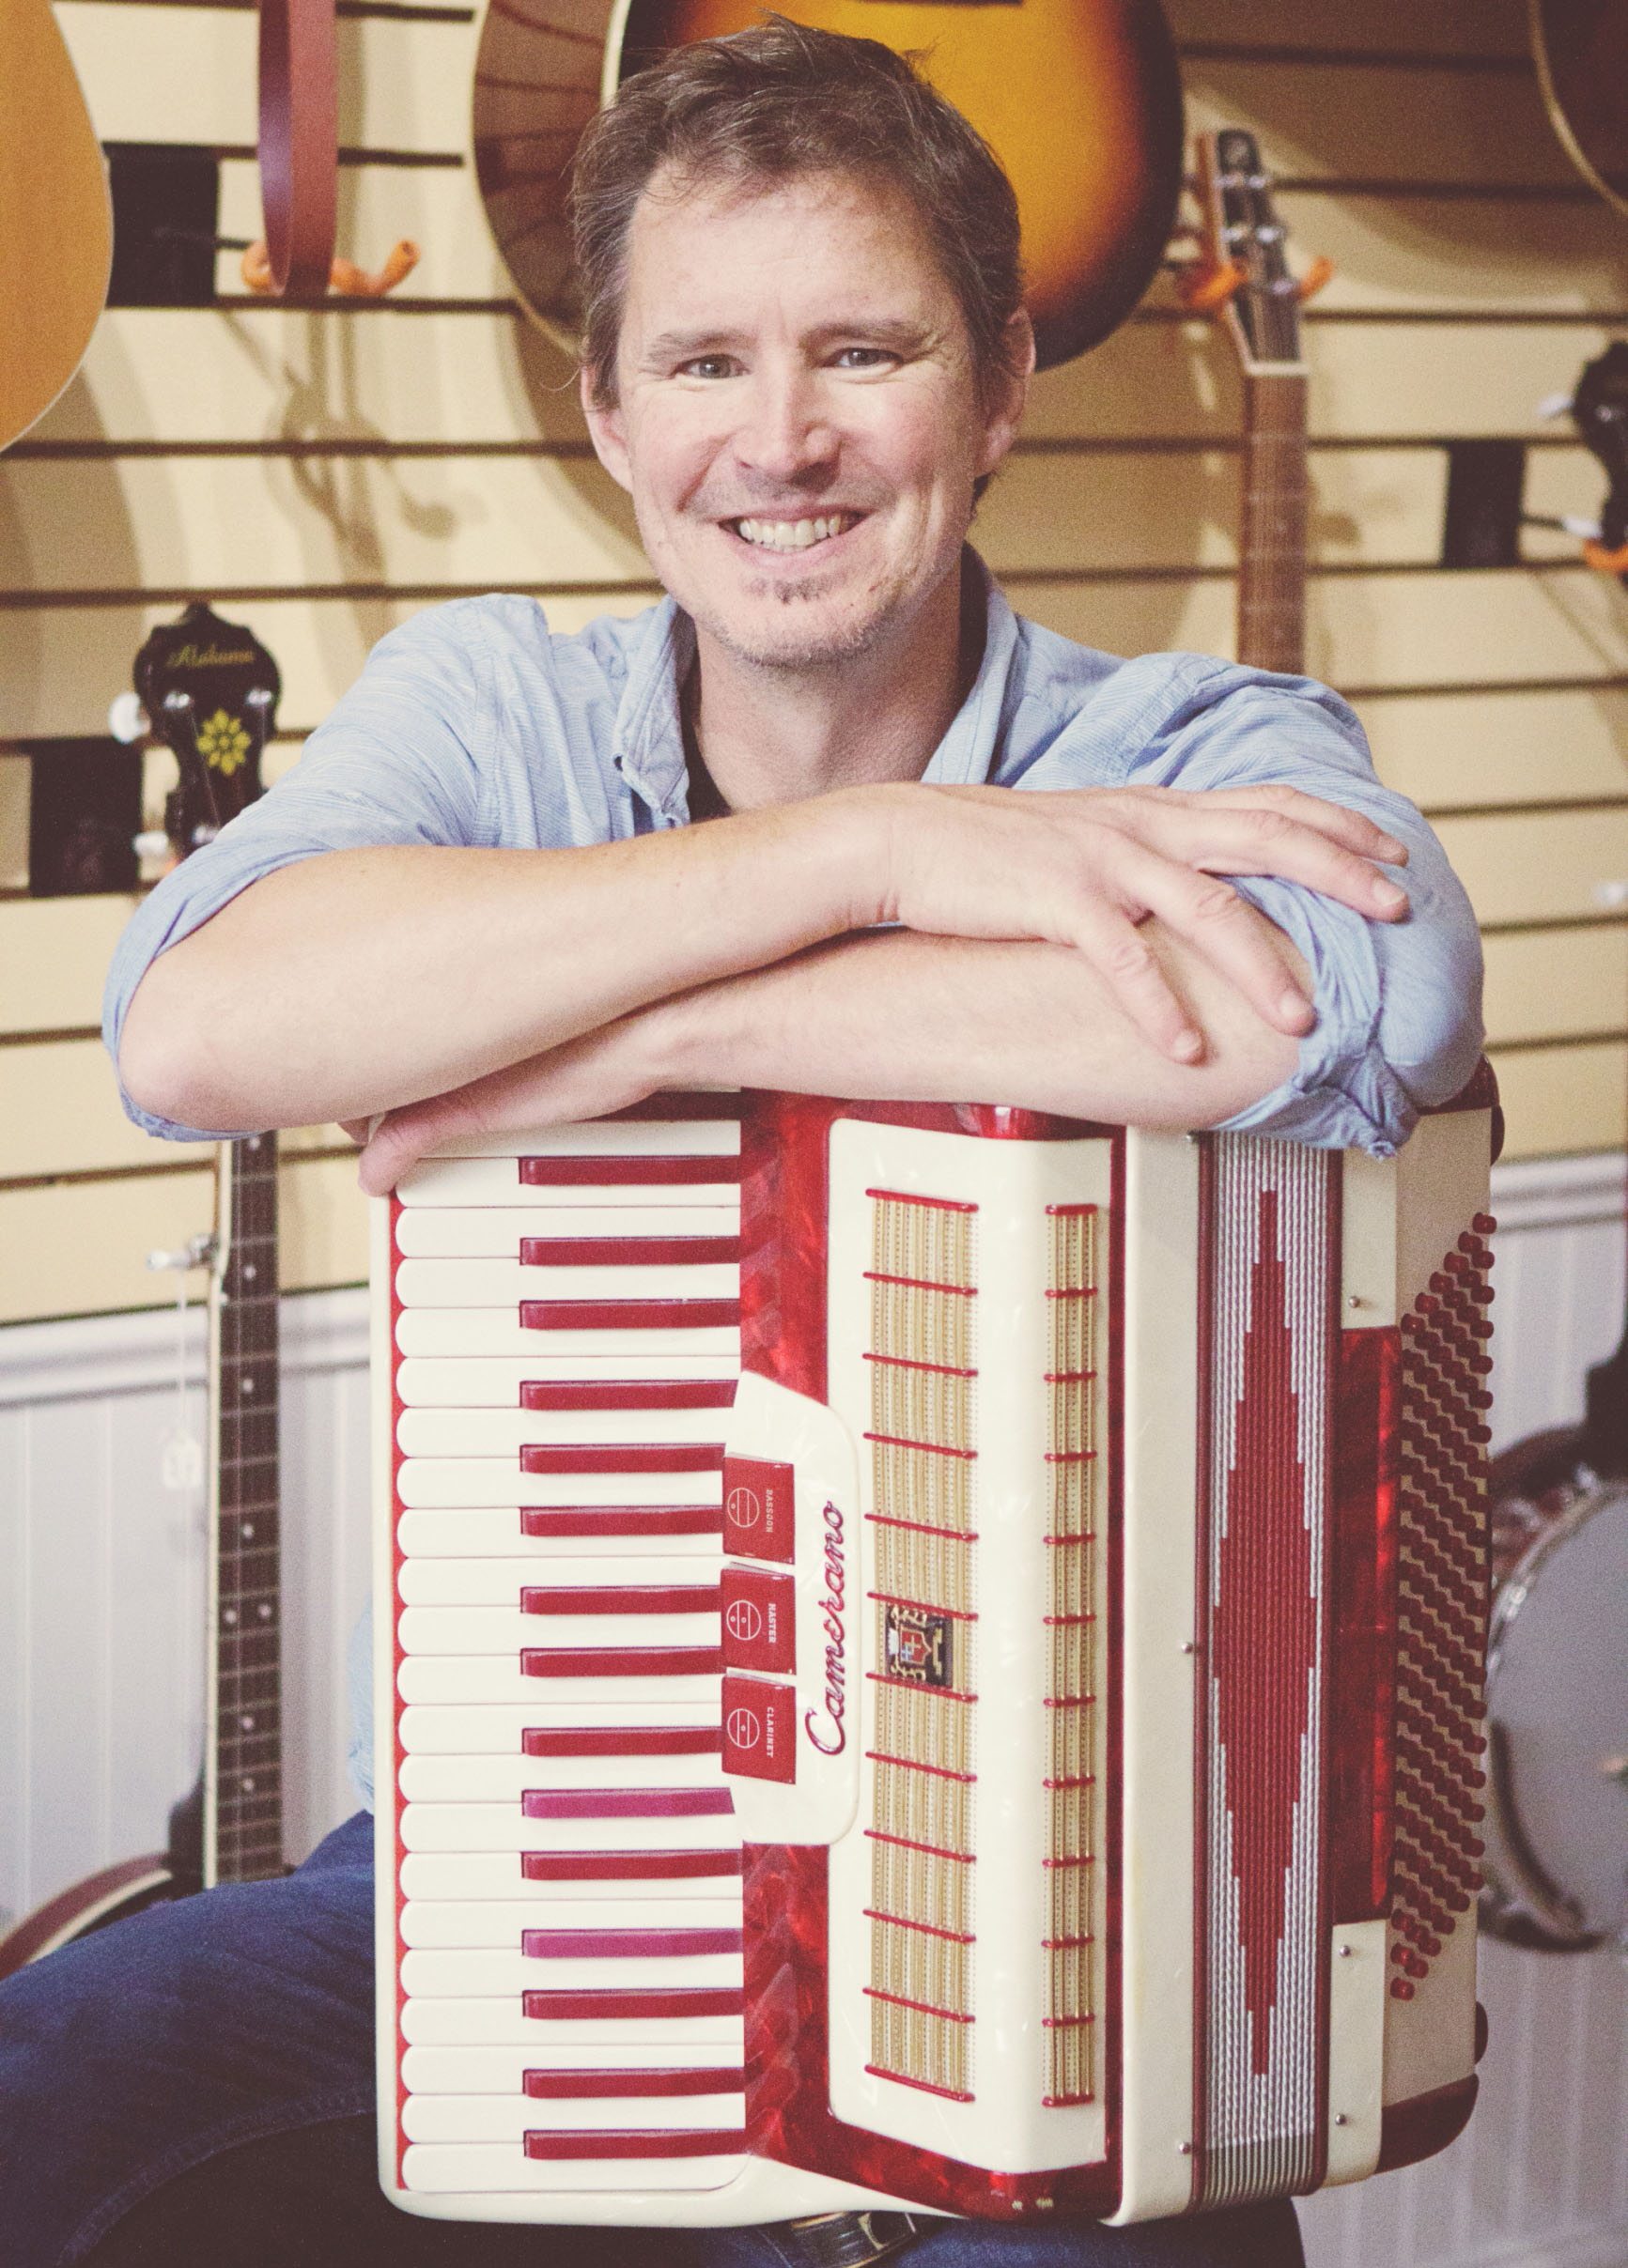 Paul Buchanan   Piano, Guitar, Bass, Mandolin, Accordion  Paul has played festivals and toured throughout North America. His album  Alfalfa Honey  topped the East Coast Countdown for four weeks, and his act Flat Fifth debuted at the ECMA main stage & garnered two nominations. He has accompanied songwriter Laura Smith, and performs in Eilidh and The Woolly Jumpers, The Flaming Jays, and Flat Fifth.